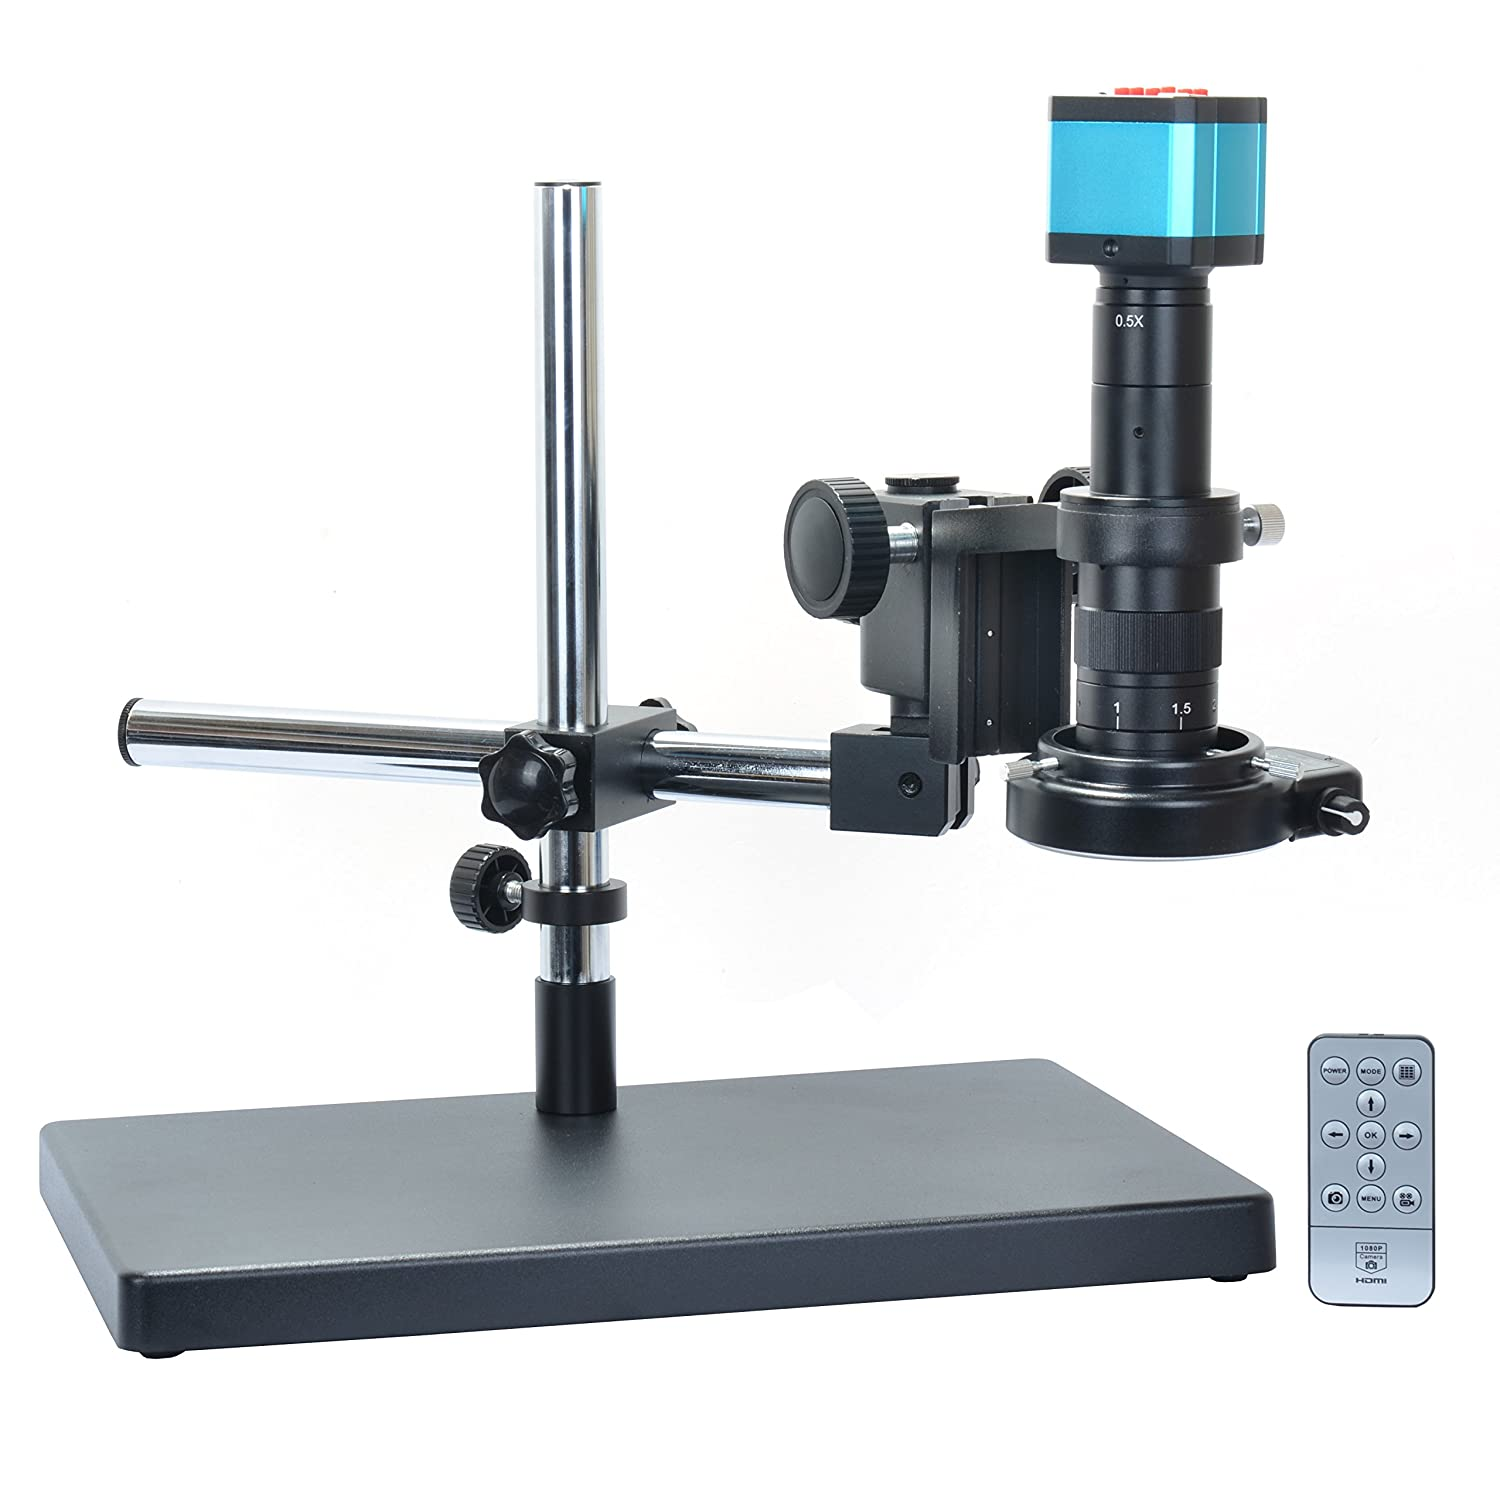 14MP HDMI Microscope Camera Kit For Industry Lab PCB USB Output TF Card Video Recorder 180X C mount Lens Big Stereo Stand 144 LED Light